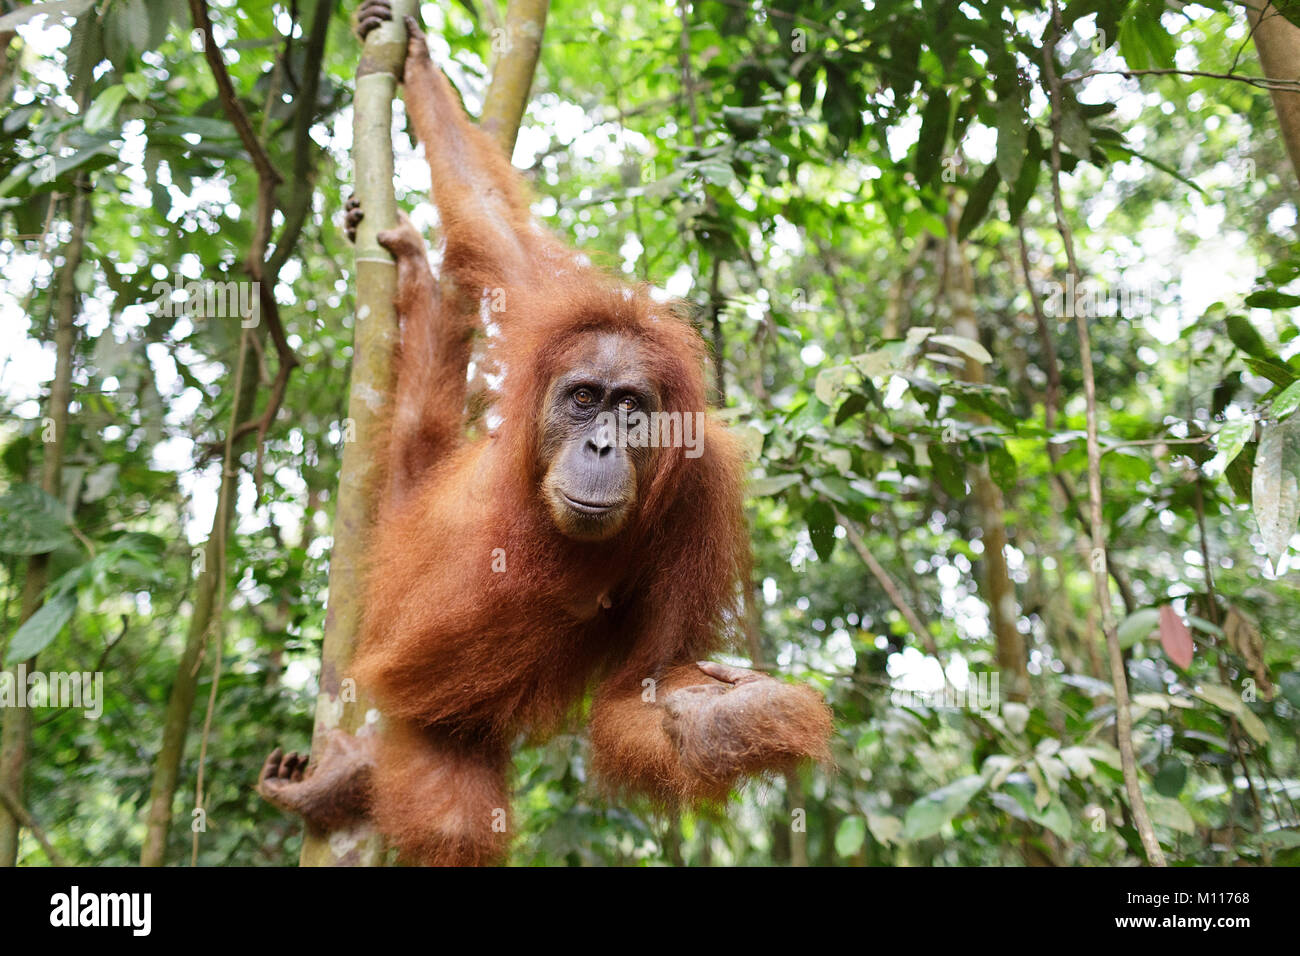 Adult female orangutan hanging from tree branches in Gunung Leuser National Park, Sumatra, Indonesia. - Stock Image